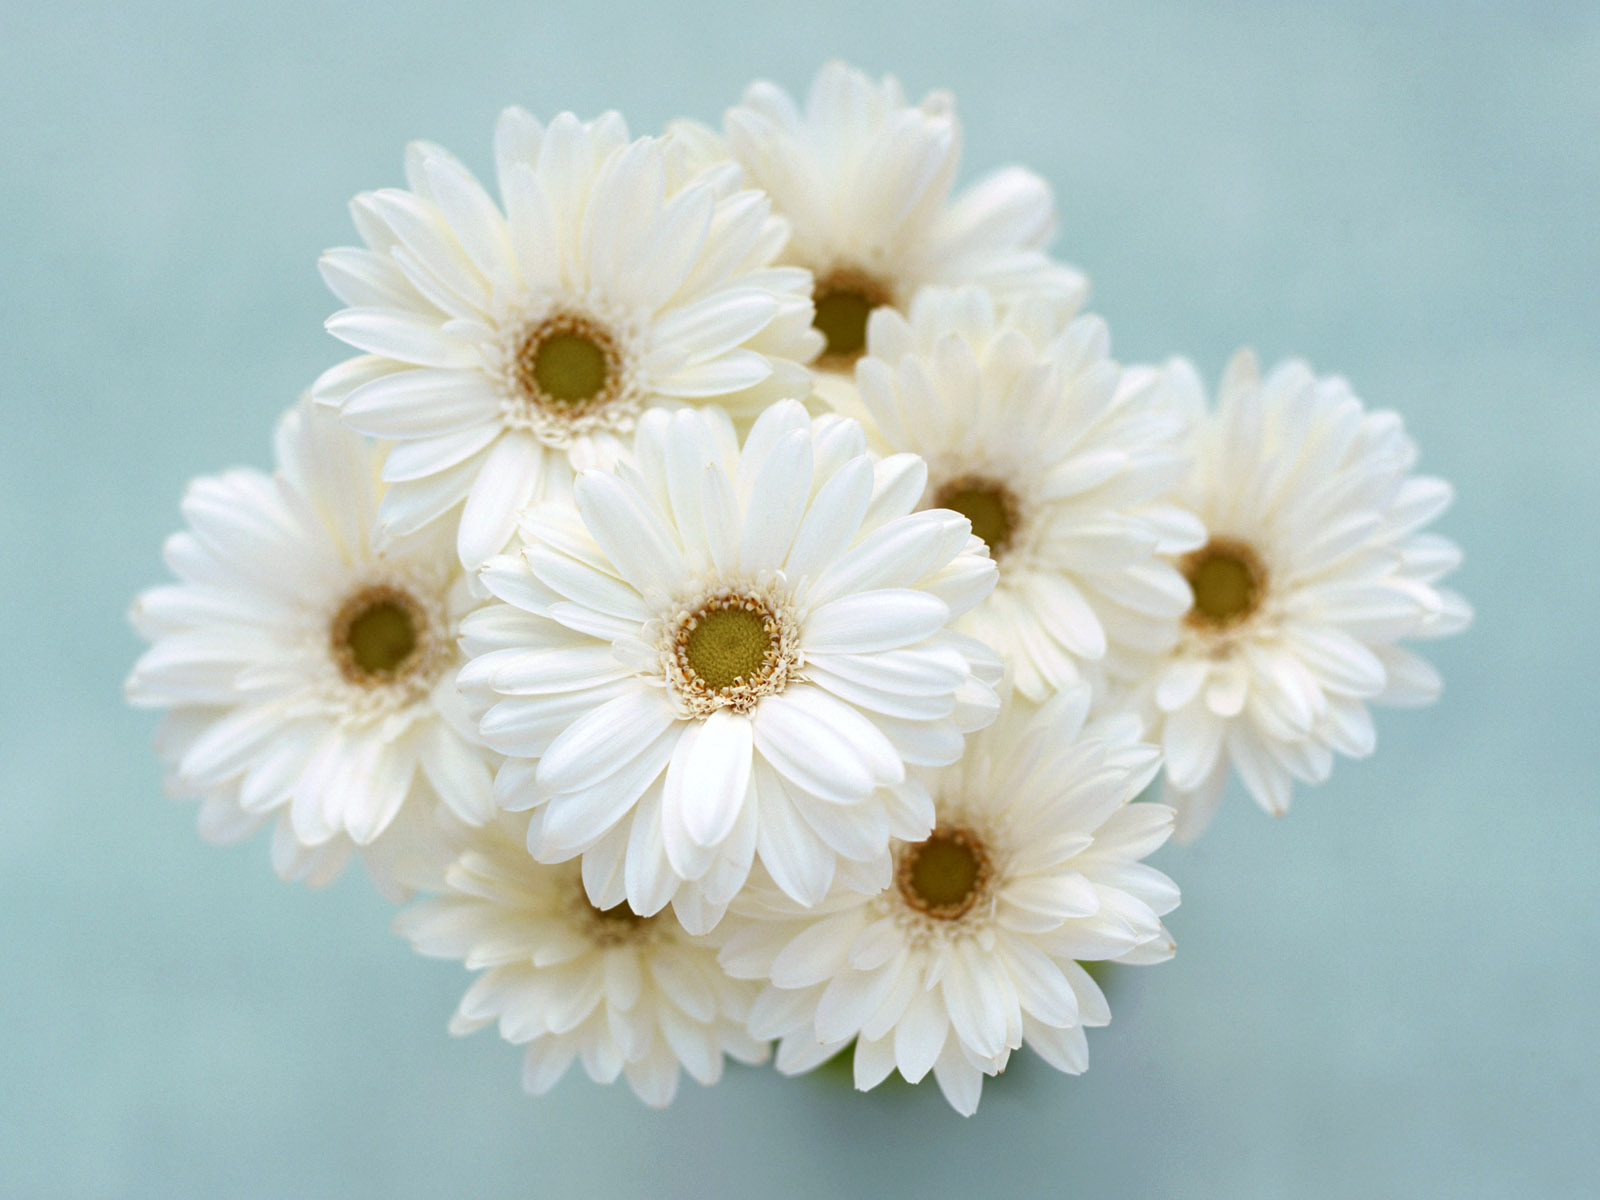 White flowers wallpapers high quality download free white flowers wallpaper free mightylinksfo